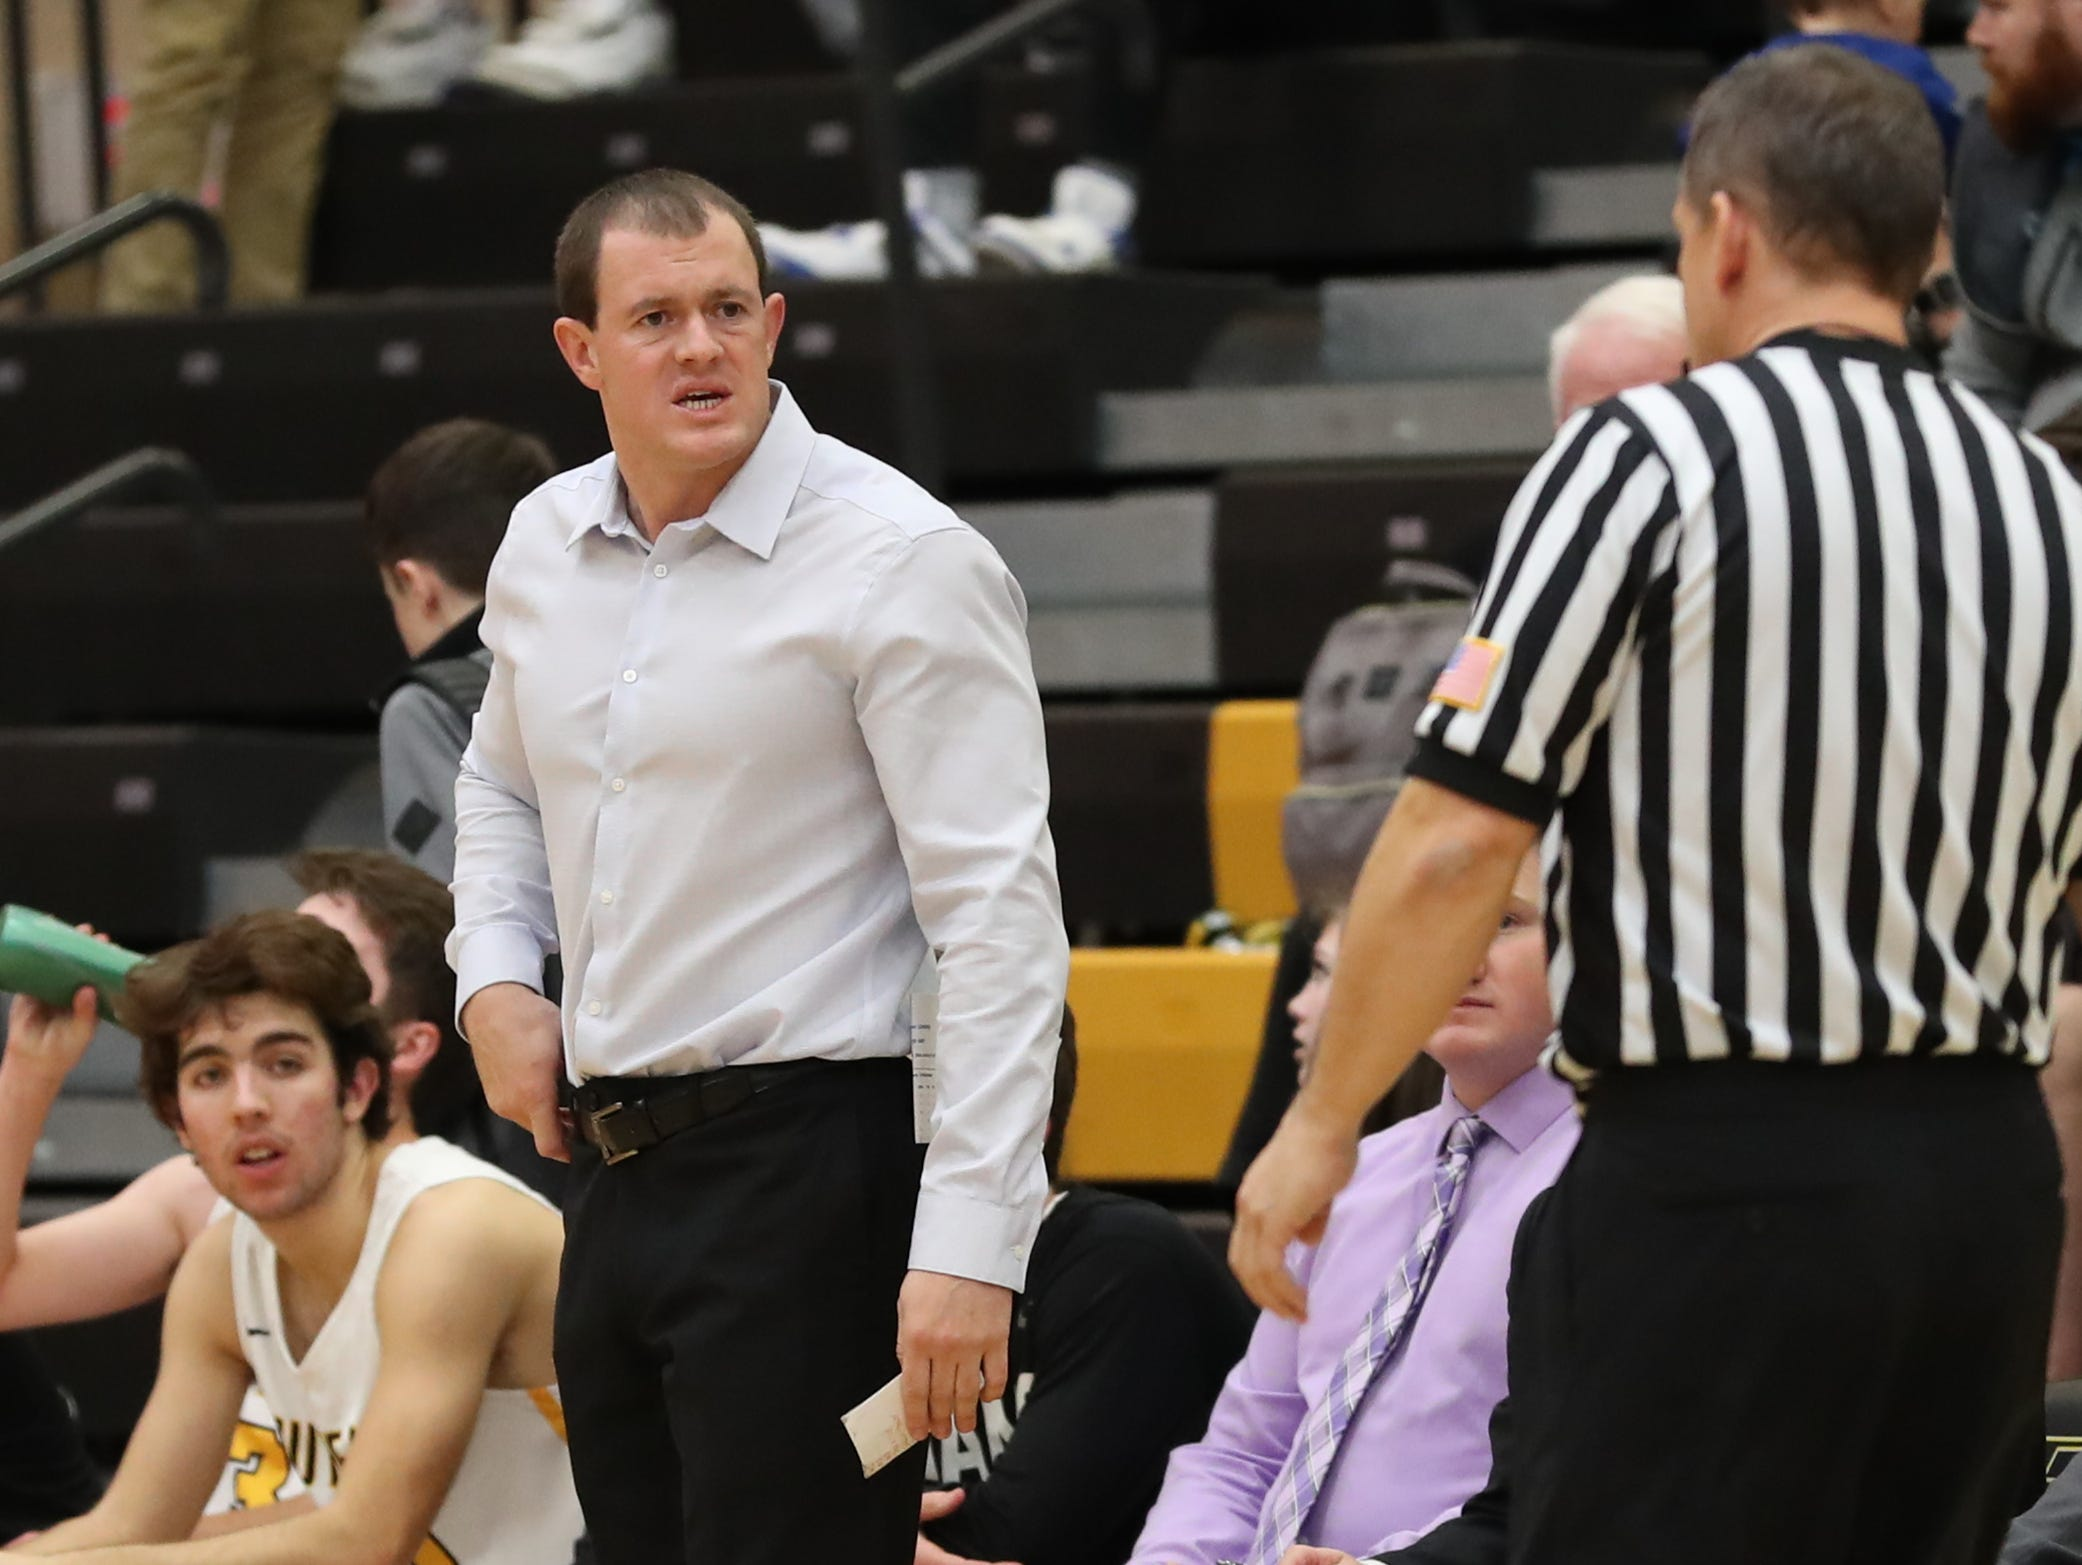 Southeast Polk Rams head coach Alan Jenkins is not happy with a call from the officials during their game against the Hoover Huskies at Southeast Polk High School.